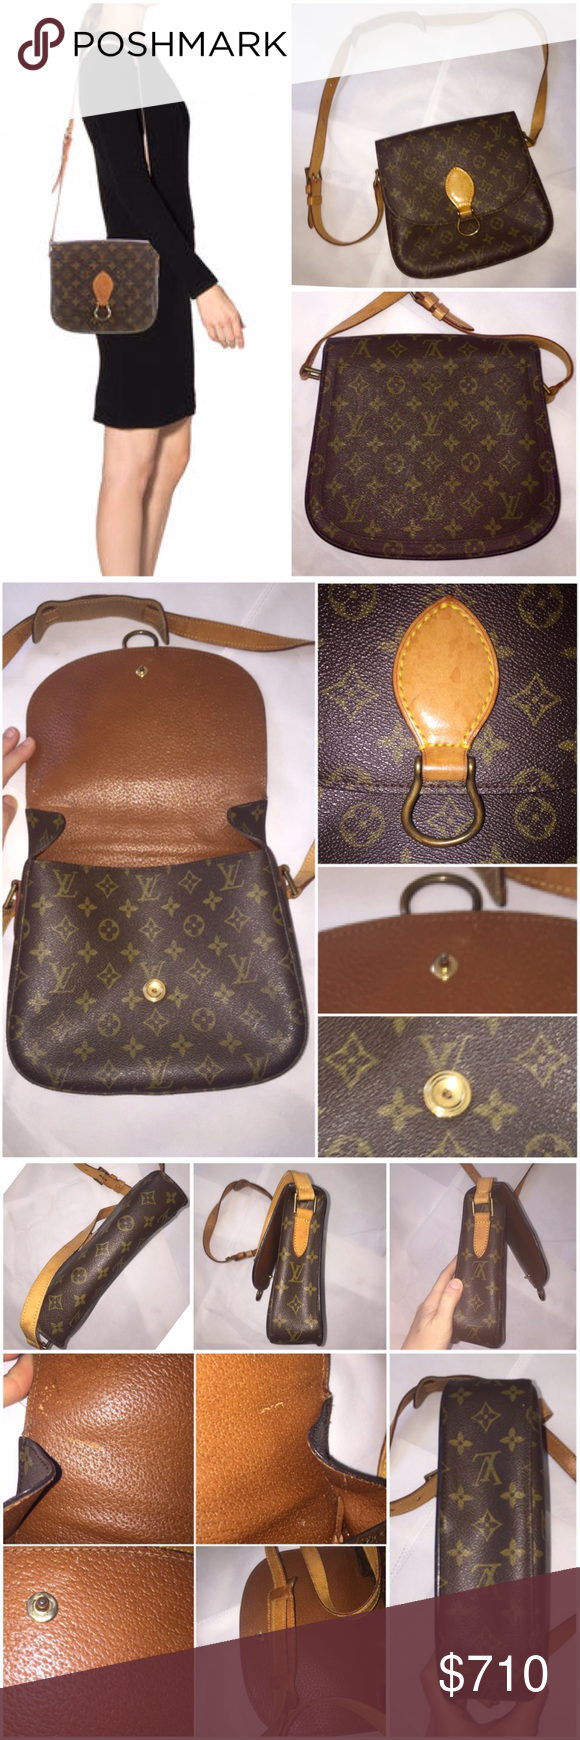 b896f5064d6b Authentic Louis Vuitton Monogram St. Cloud bag Monogram coated canvas LV St.  Cloud bag